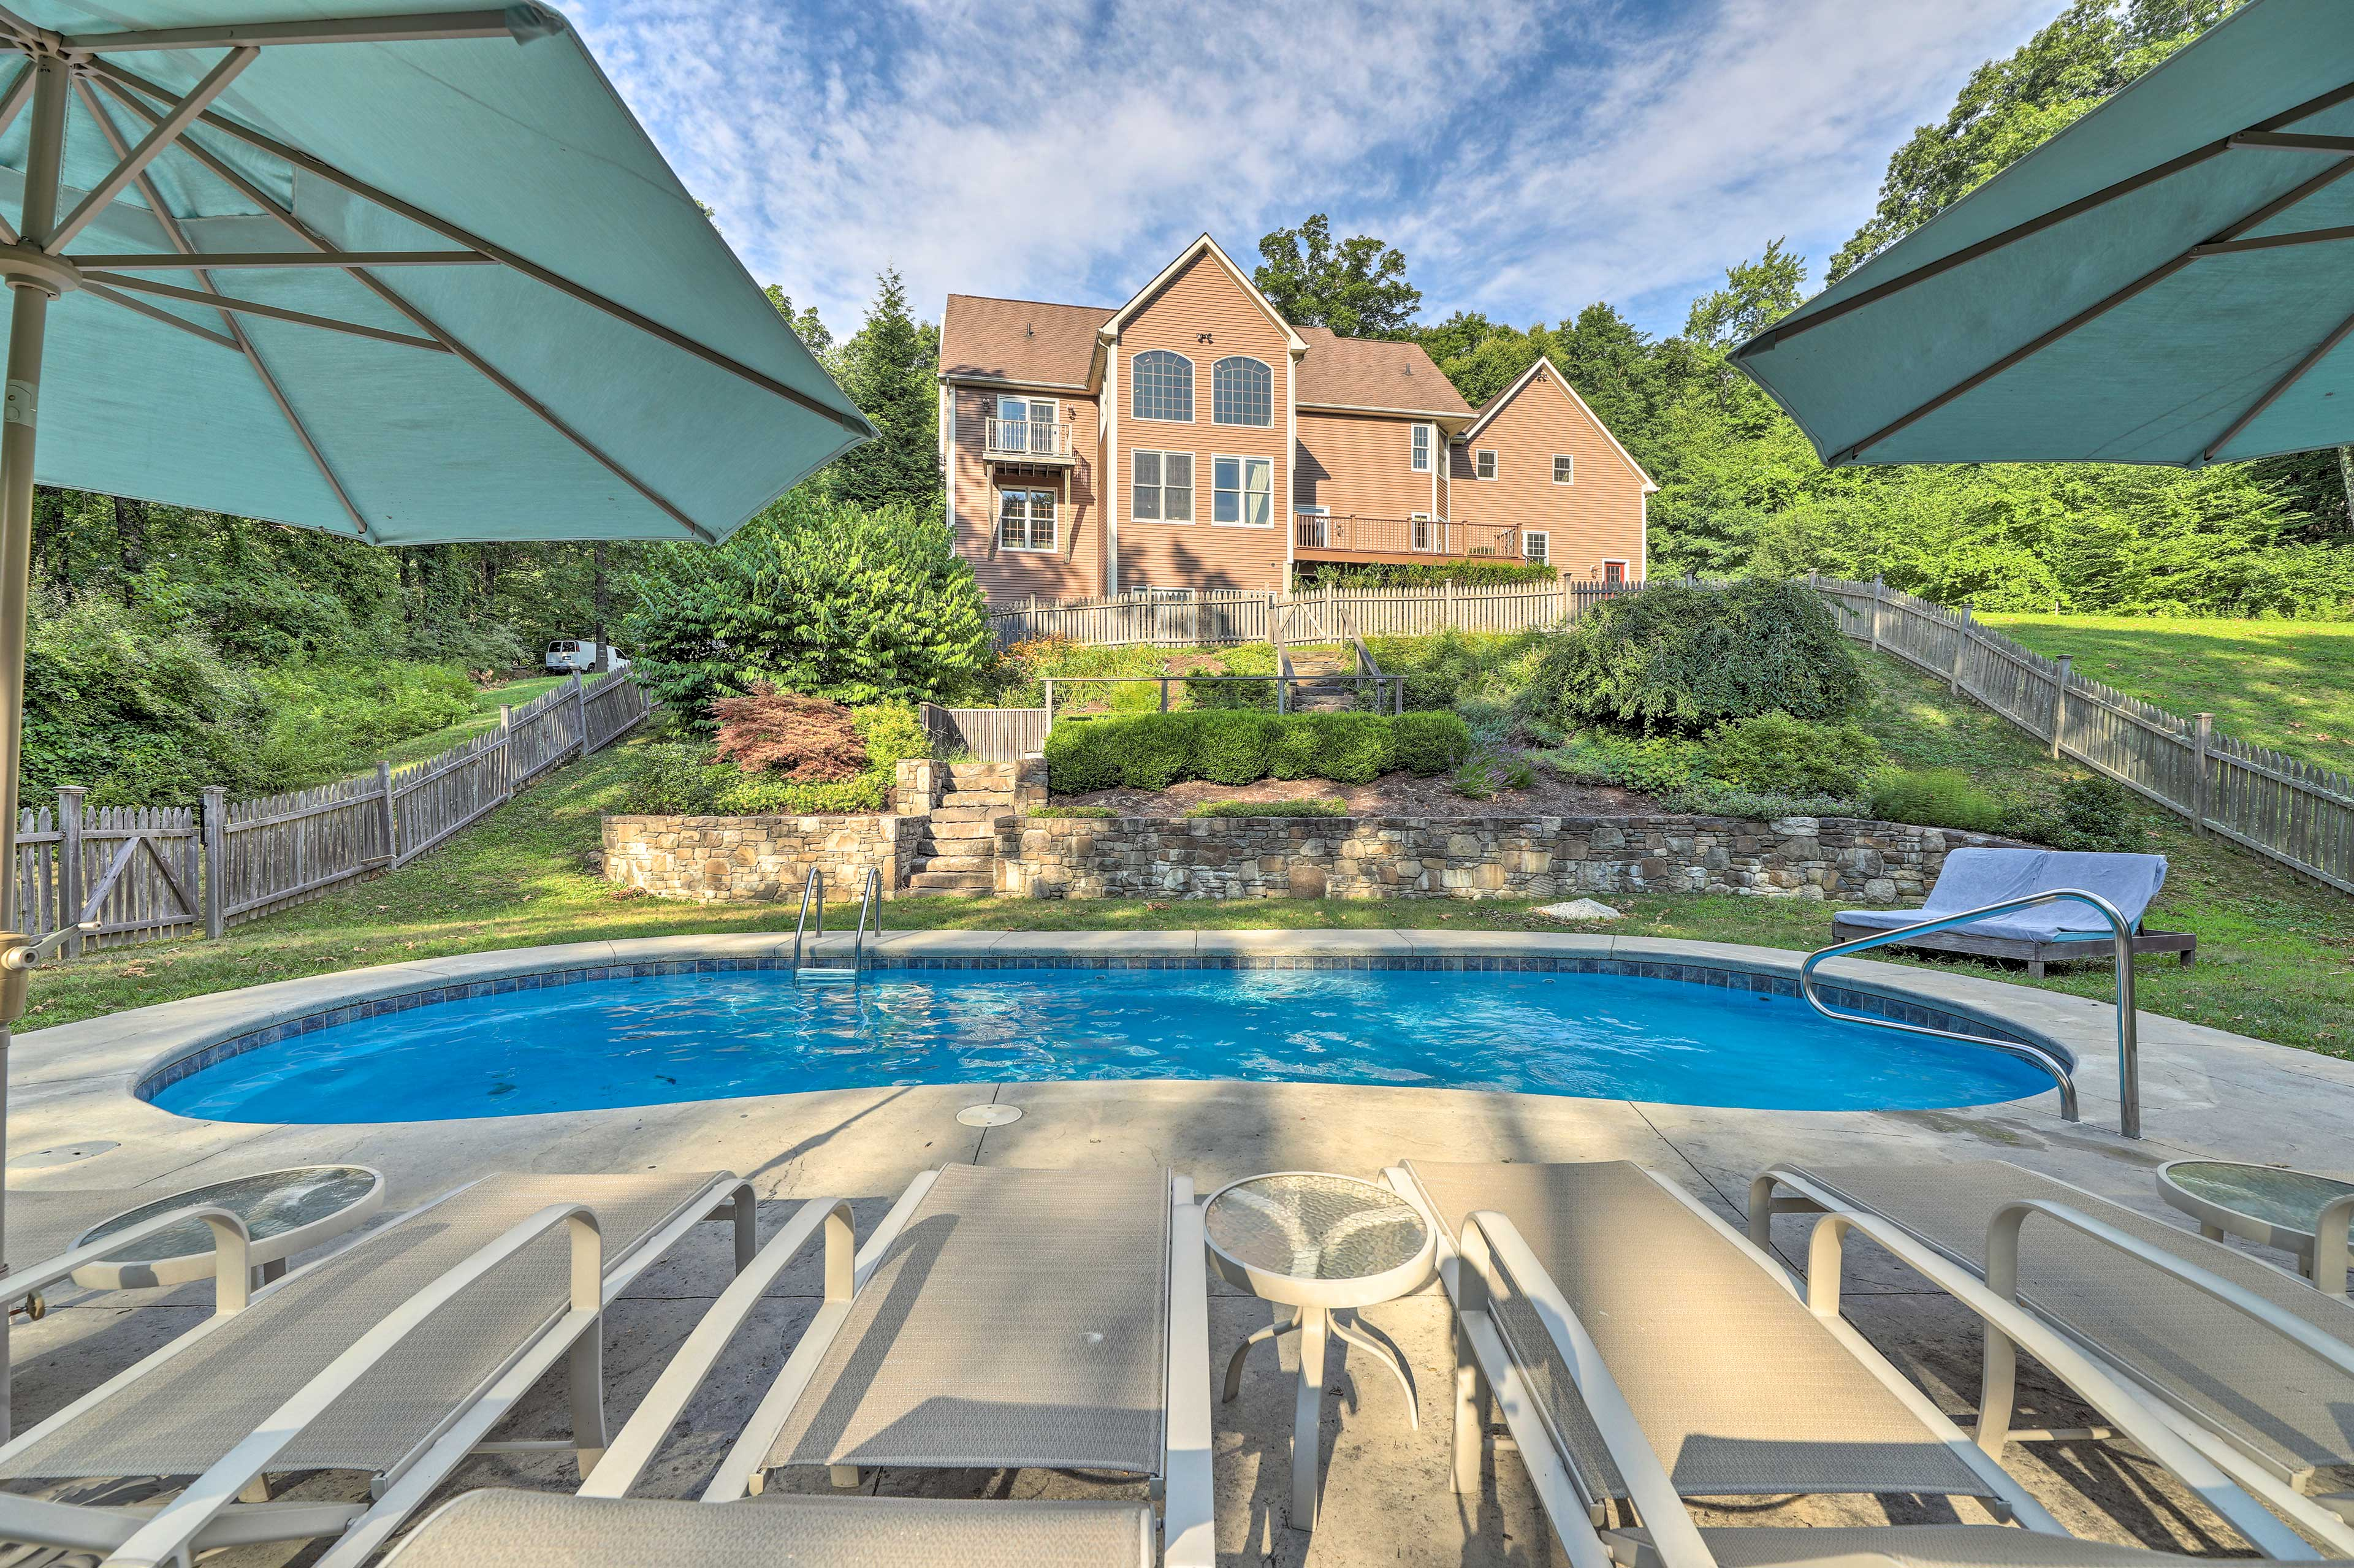 Head down the sloped yard to the private pool area, where you can lounge & swim!